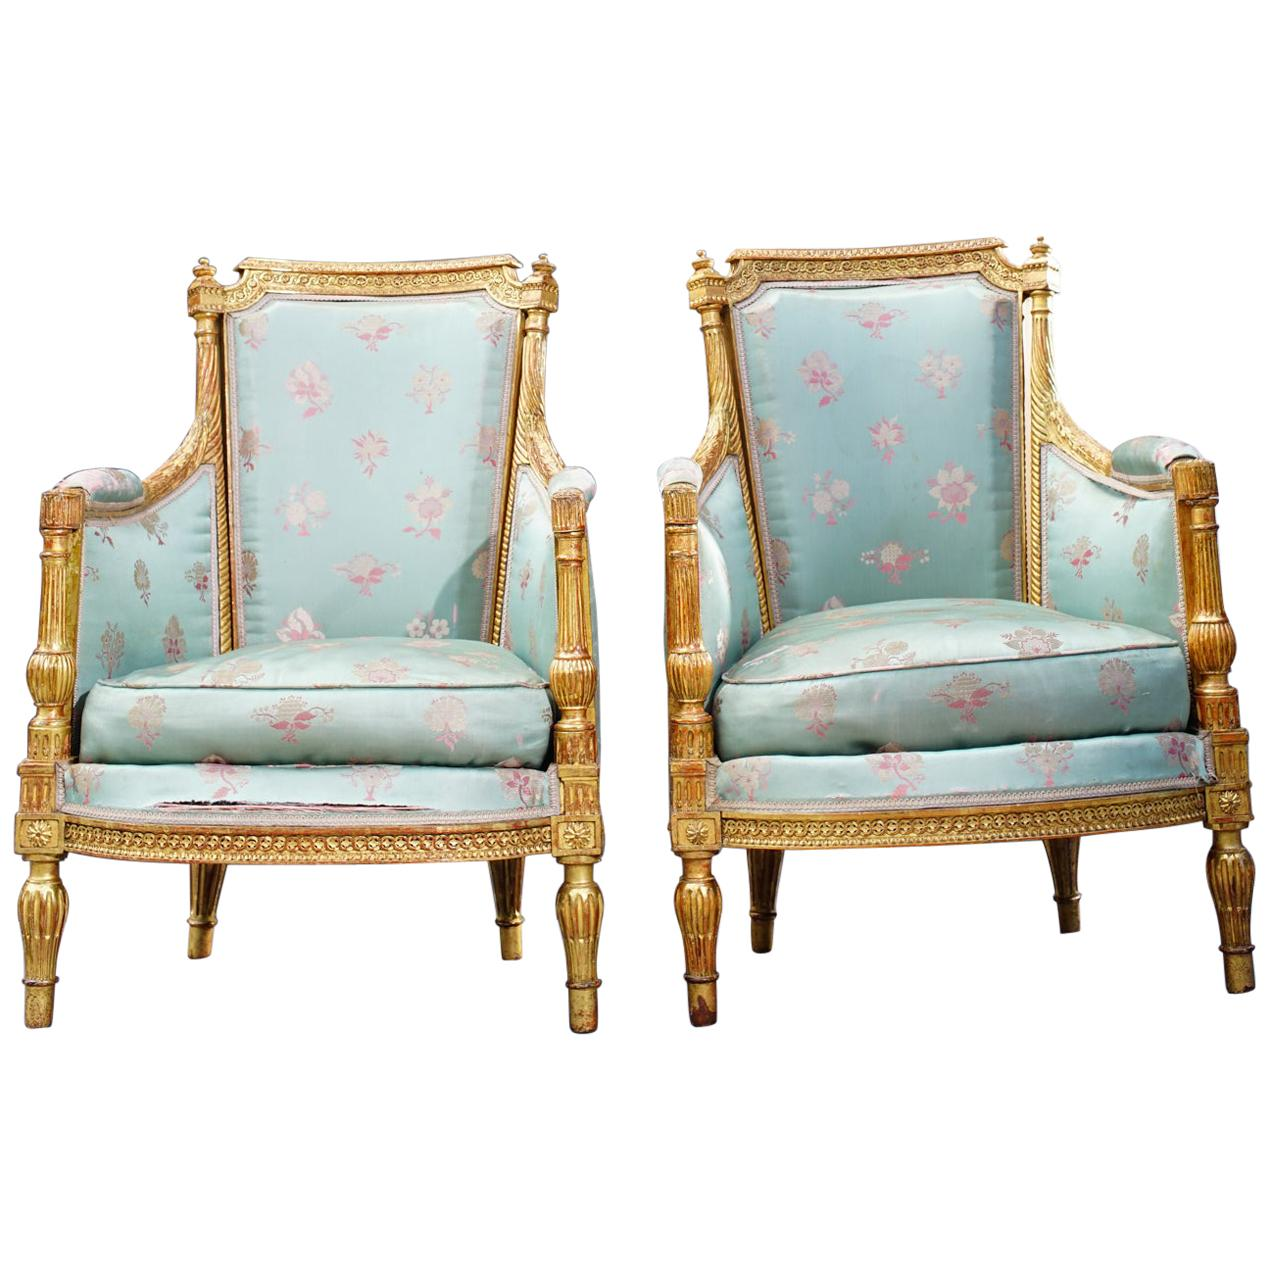 19th Century French Giltwood Armchairs